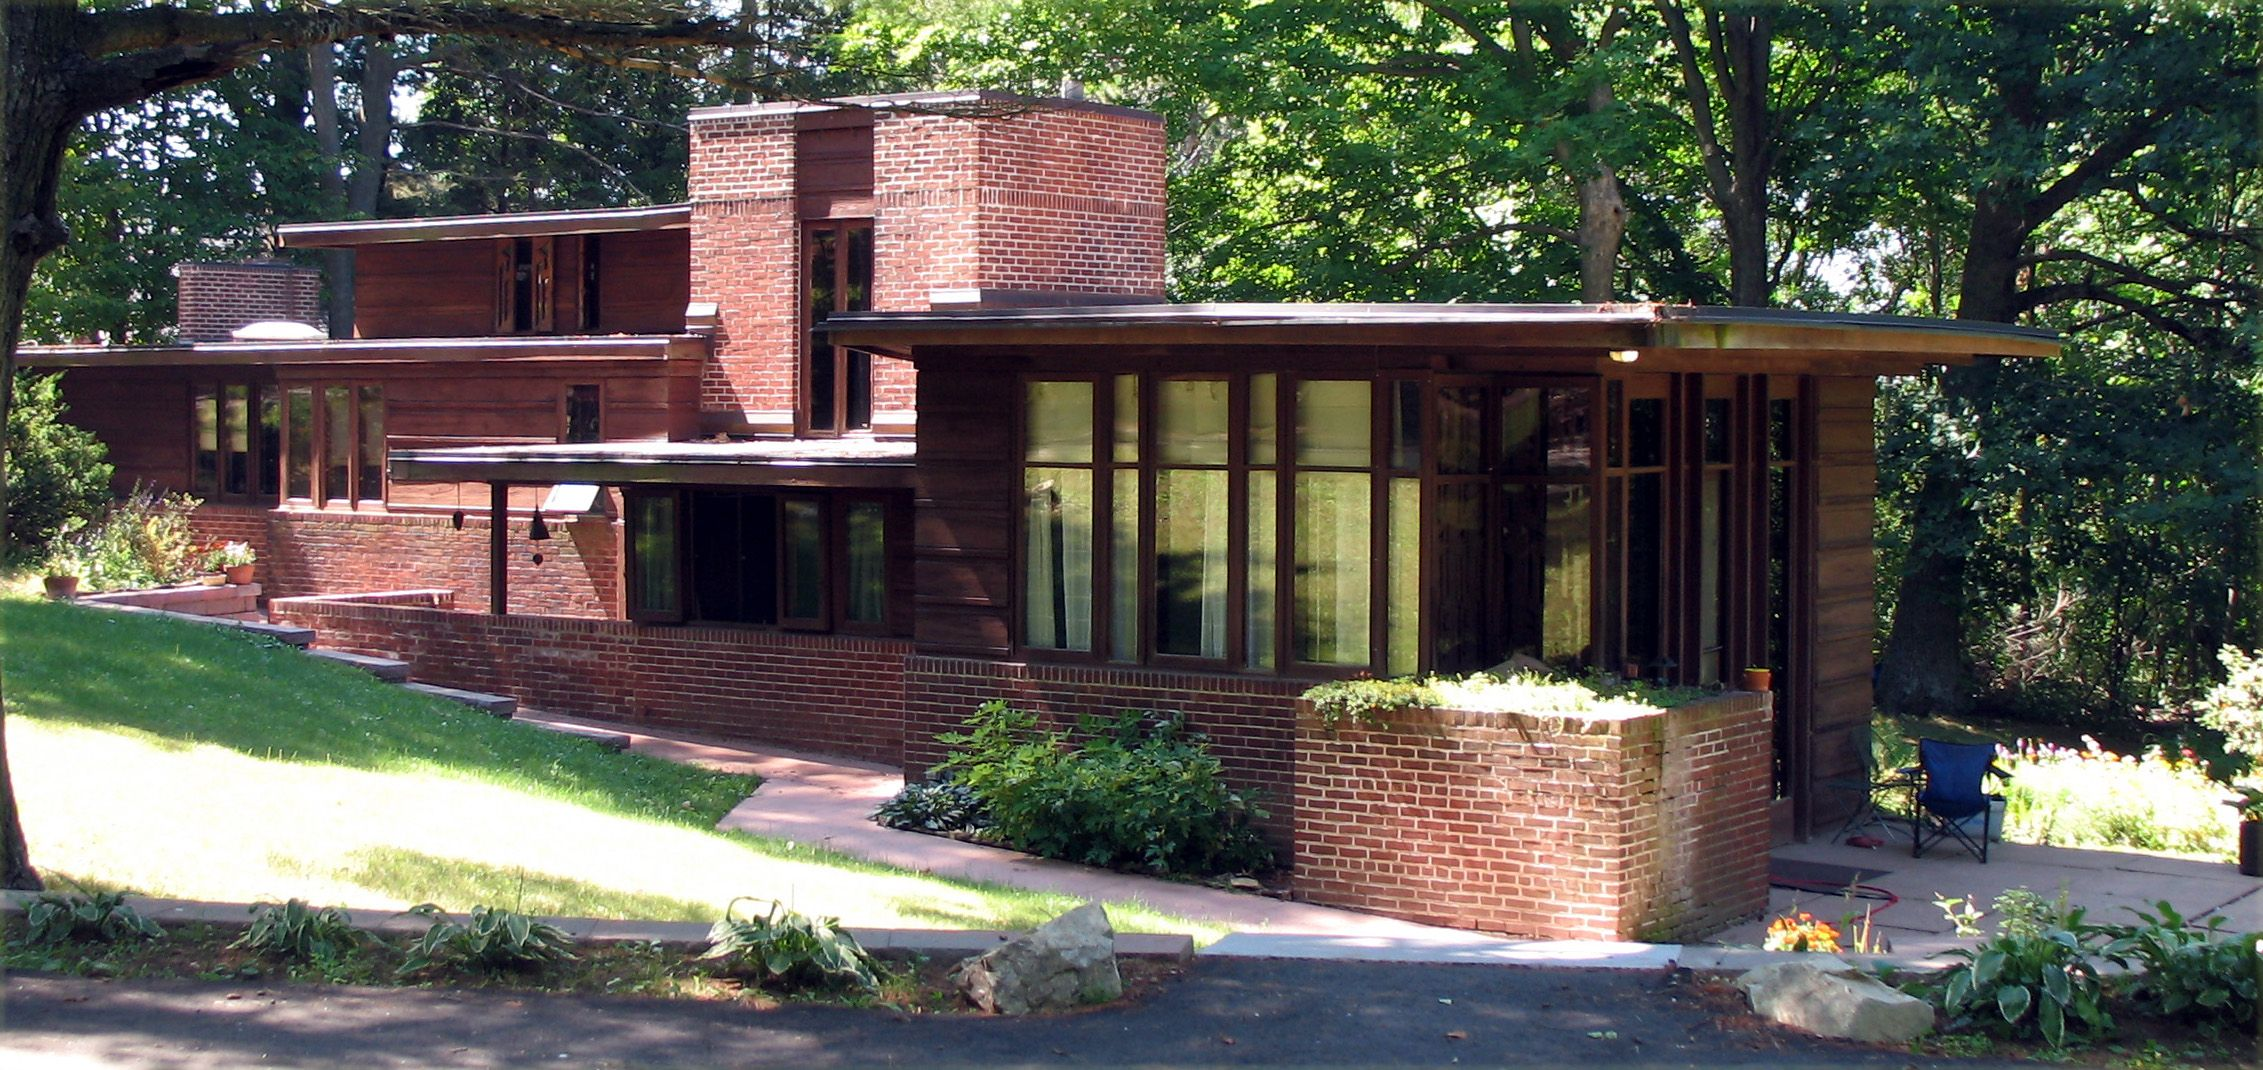 Frank Lloyd Wright Home Designs Home Design Ideas  Cabed8e710af86c07ff870153c01a929 Frank Lloyd Wright Home Designshtml